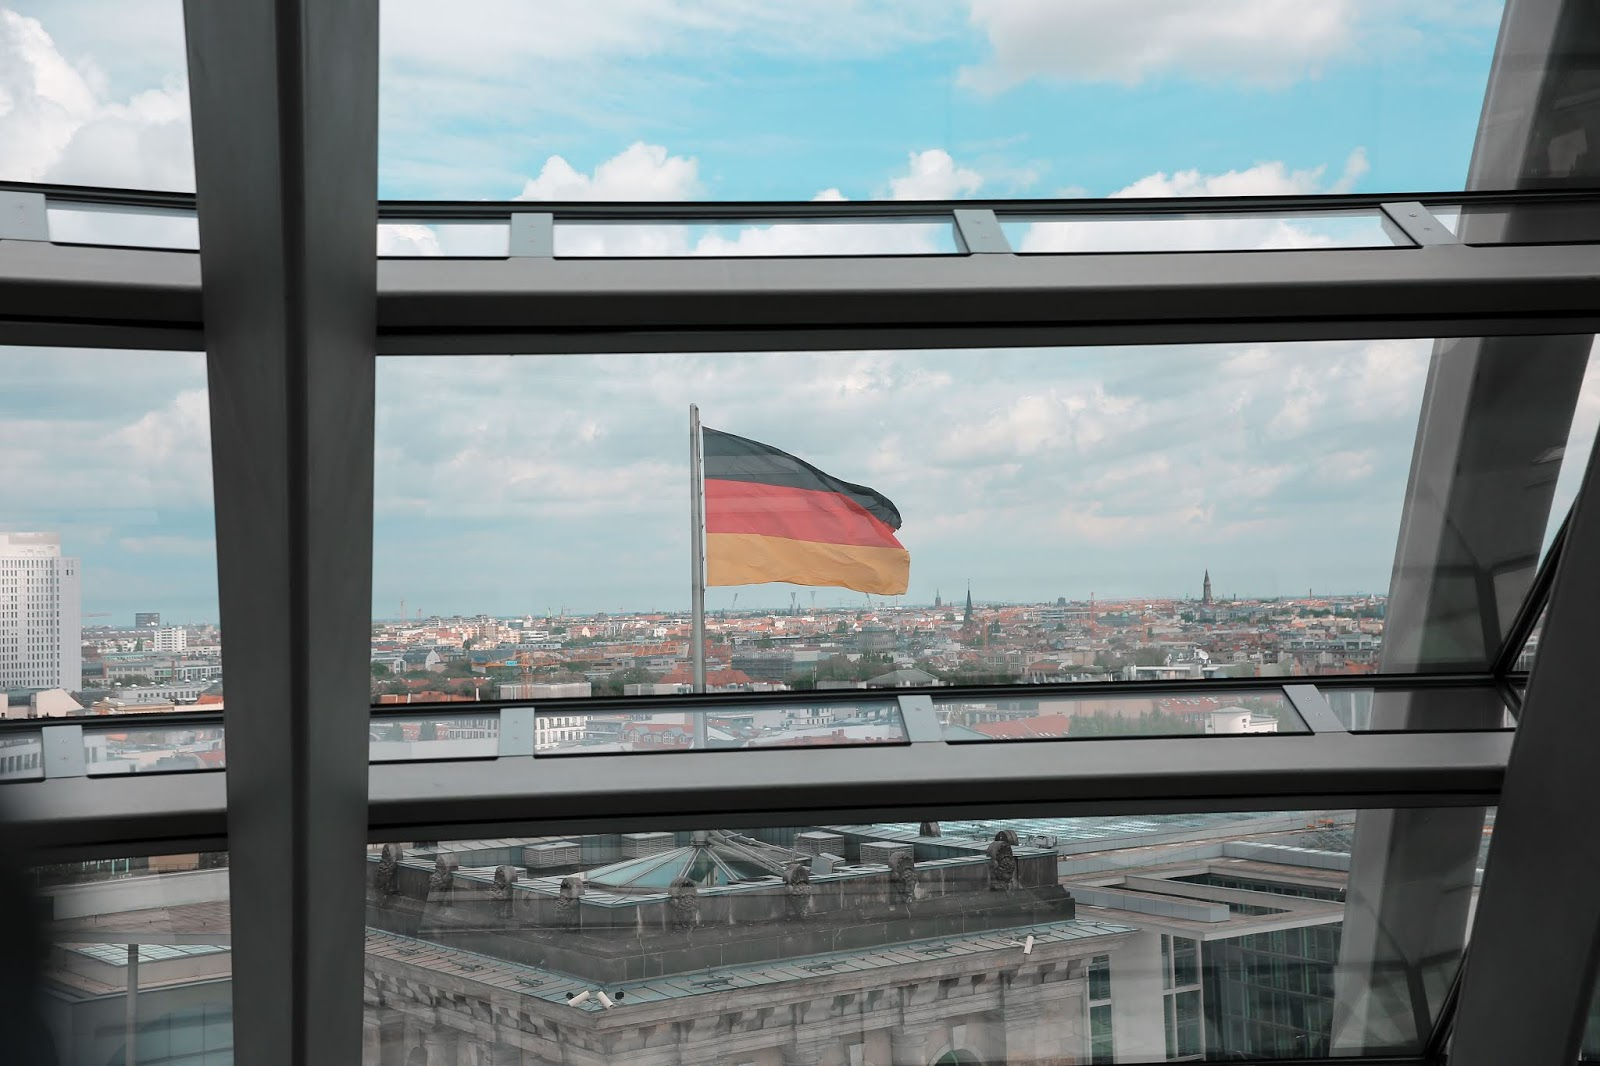 The Reichstag Building Dome View